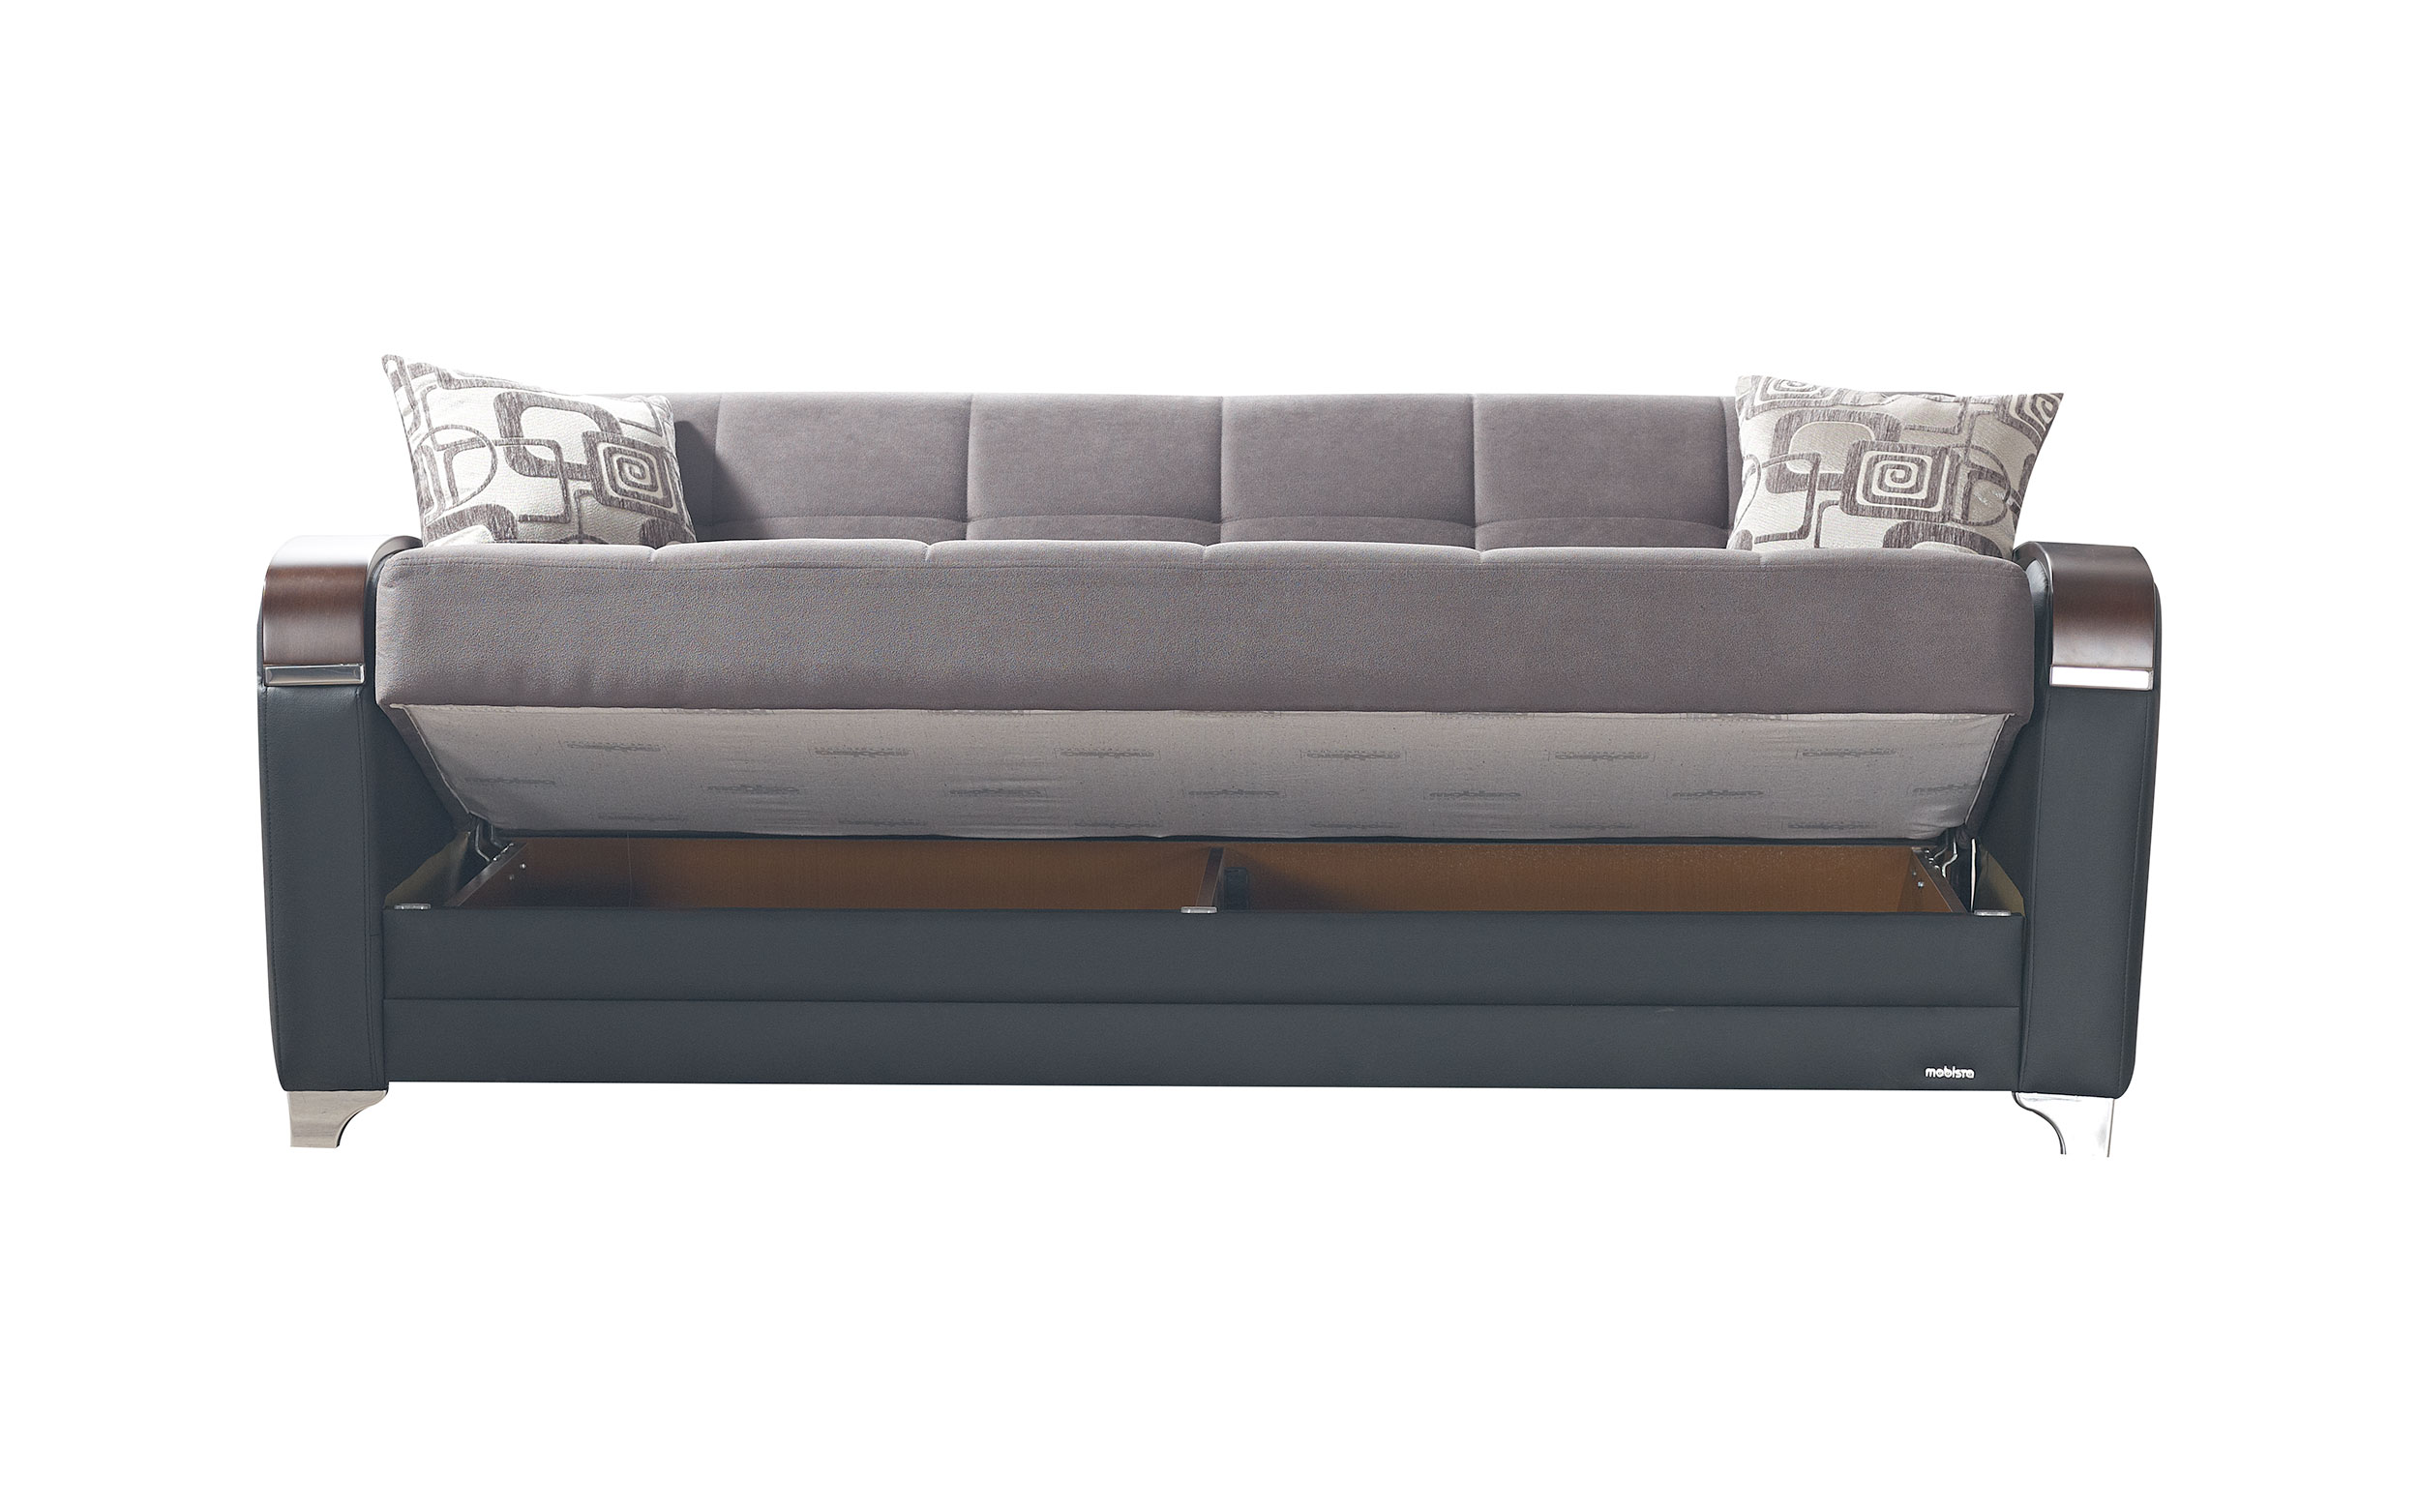 Etro Vintage Gray Fabric Sofa Bed By Mobista (Mobista)